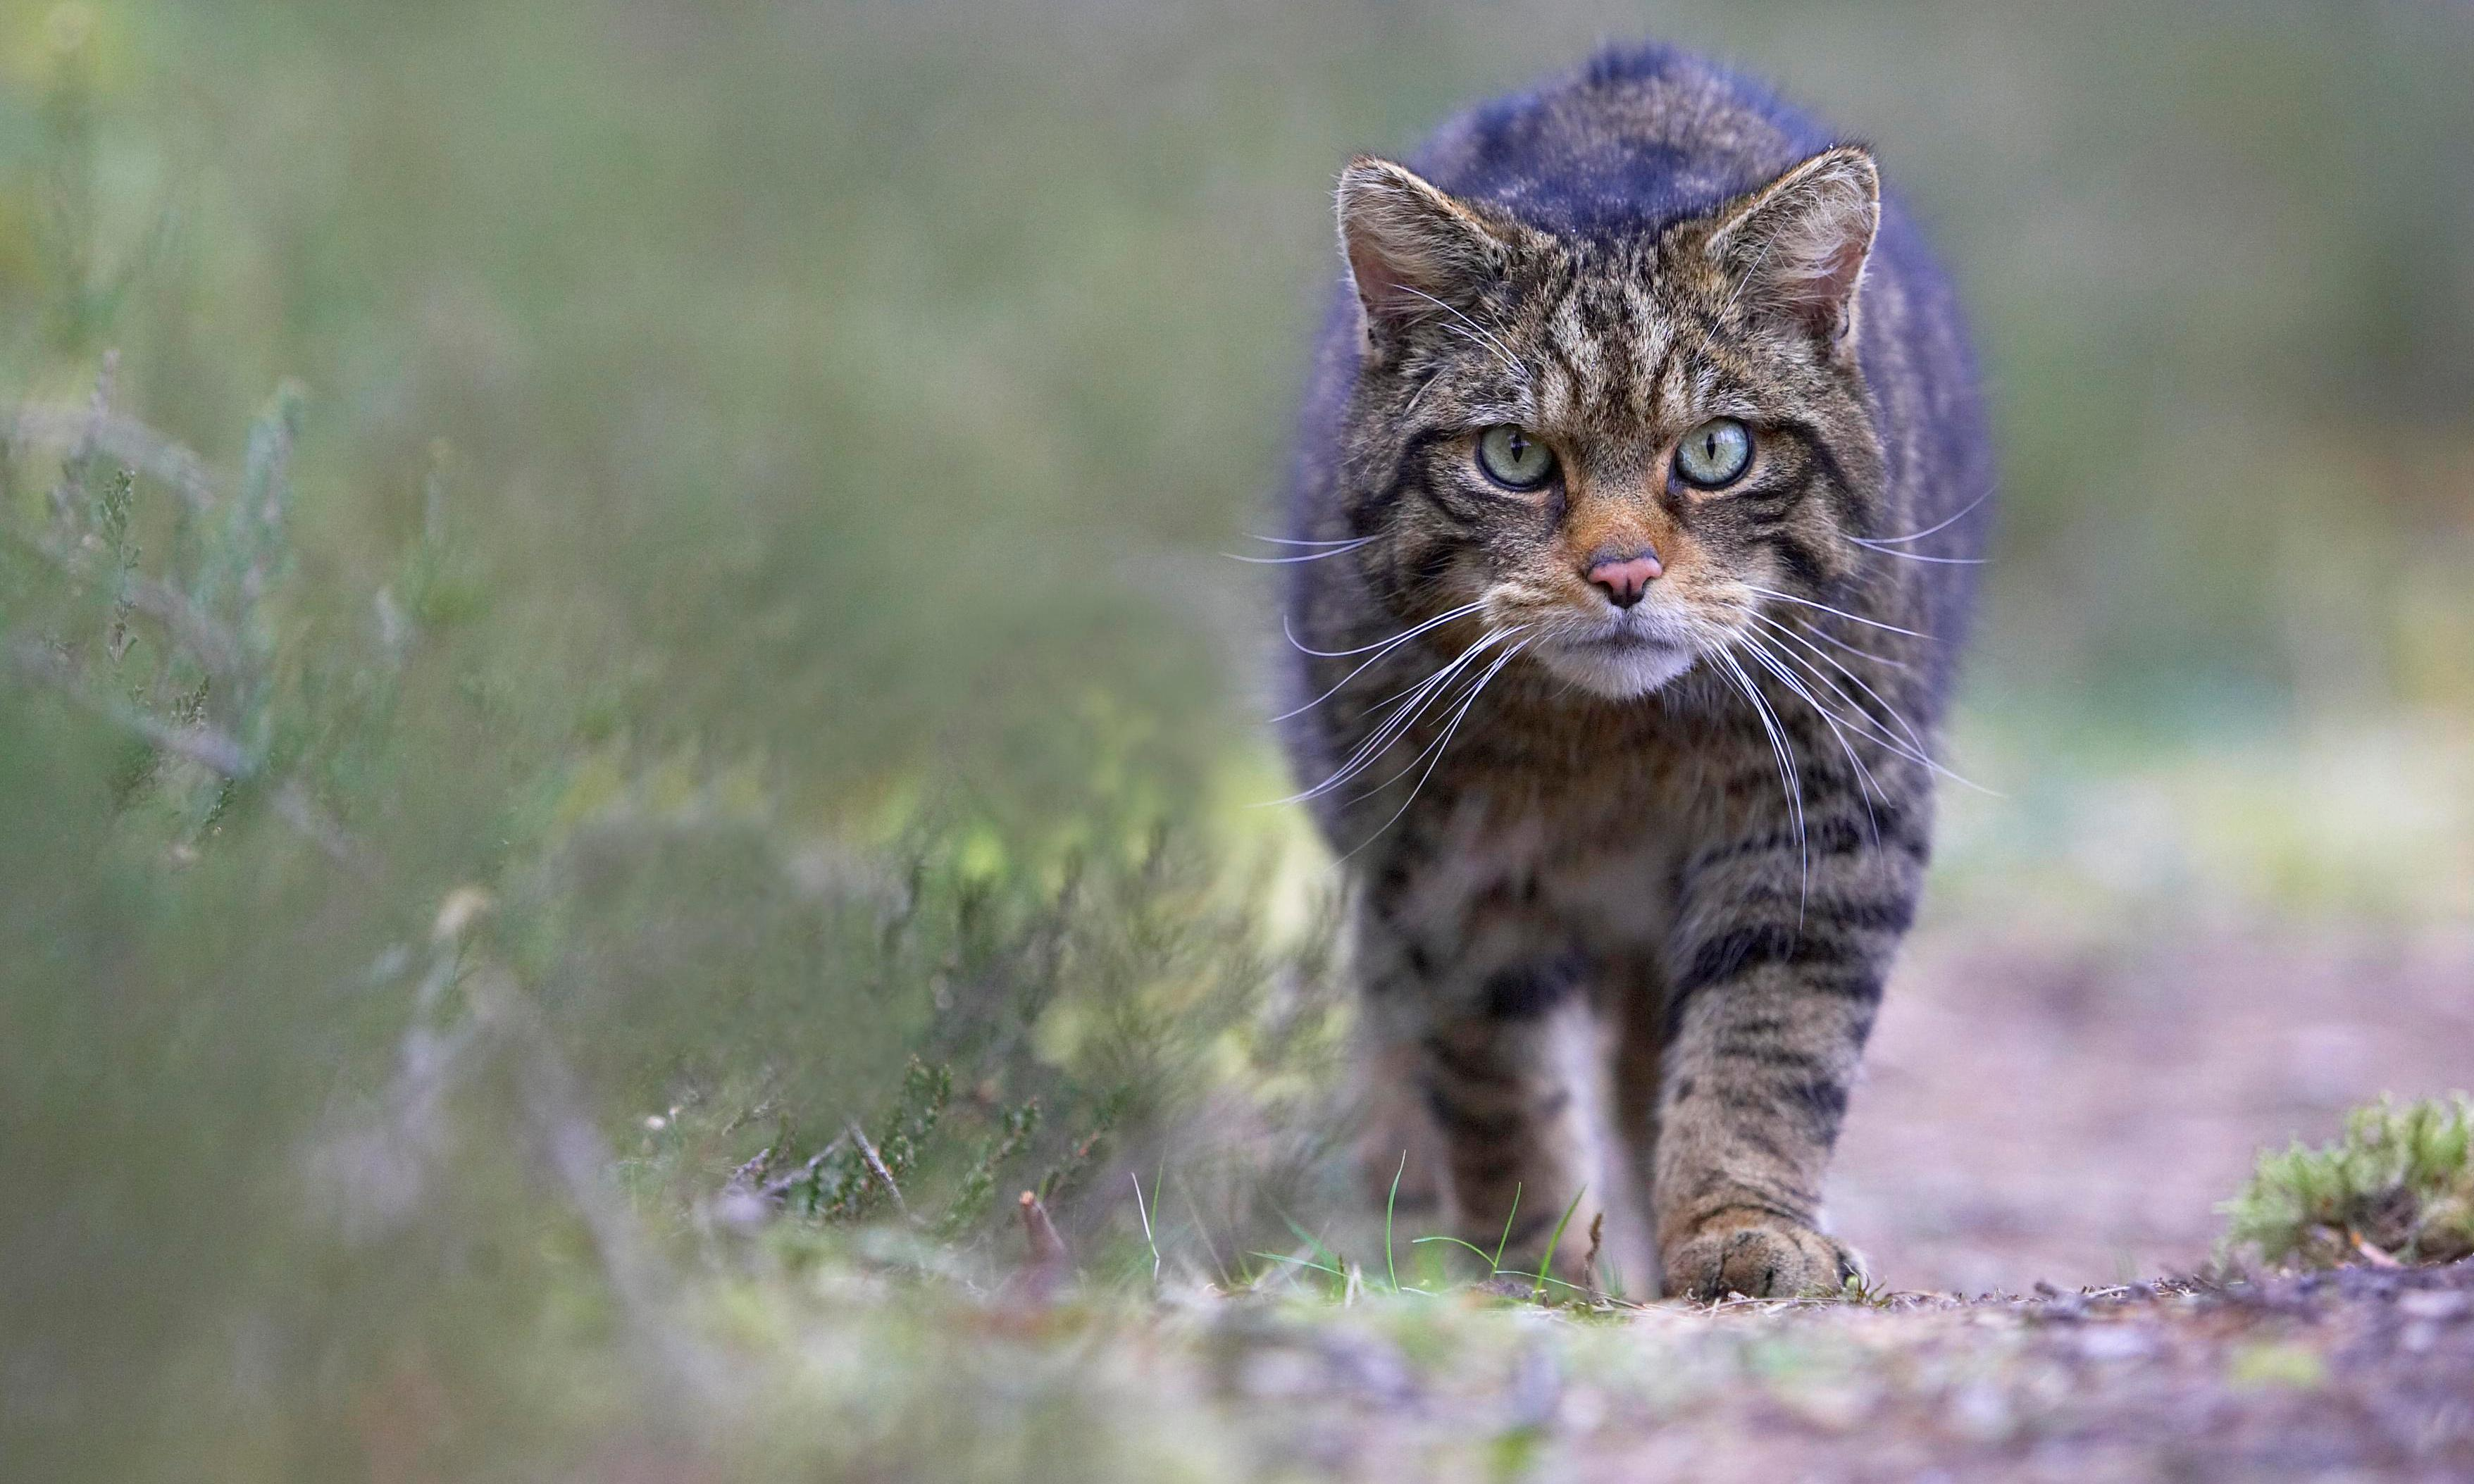 Populations of UK's most important wildlife have plummeted since 1970